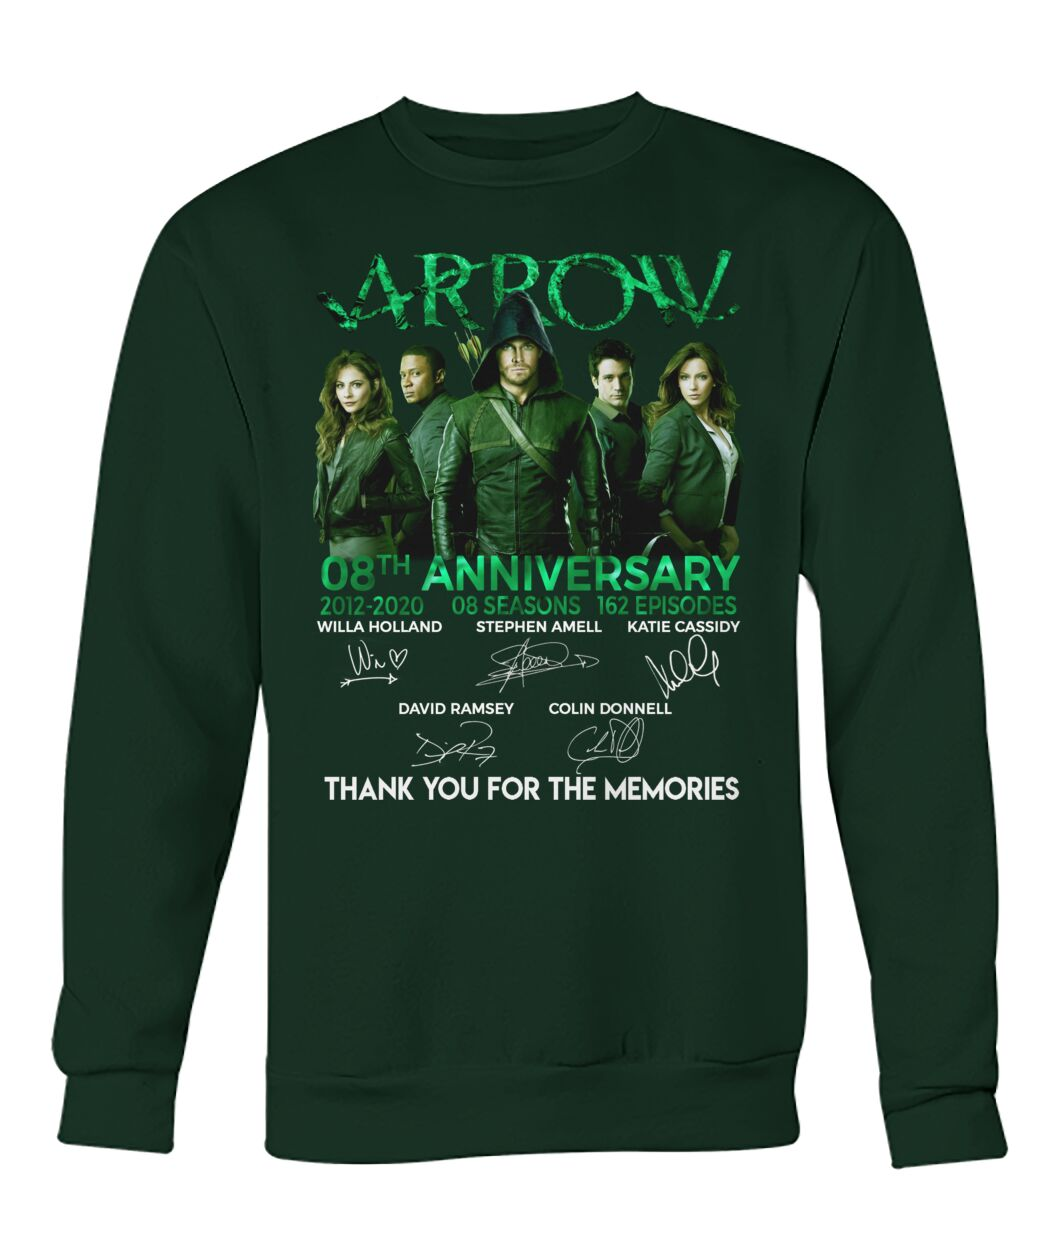 Arrow 8th anniversary thank you for the memories